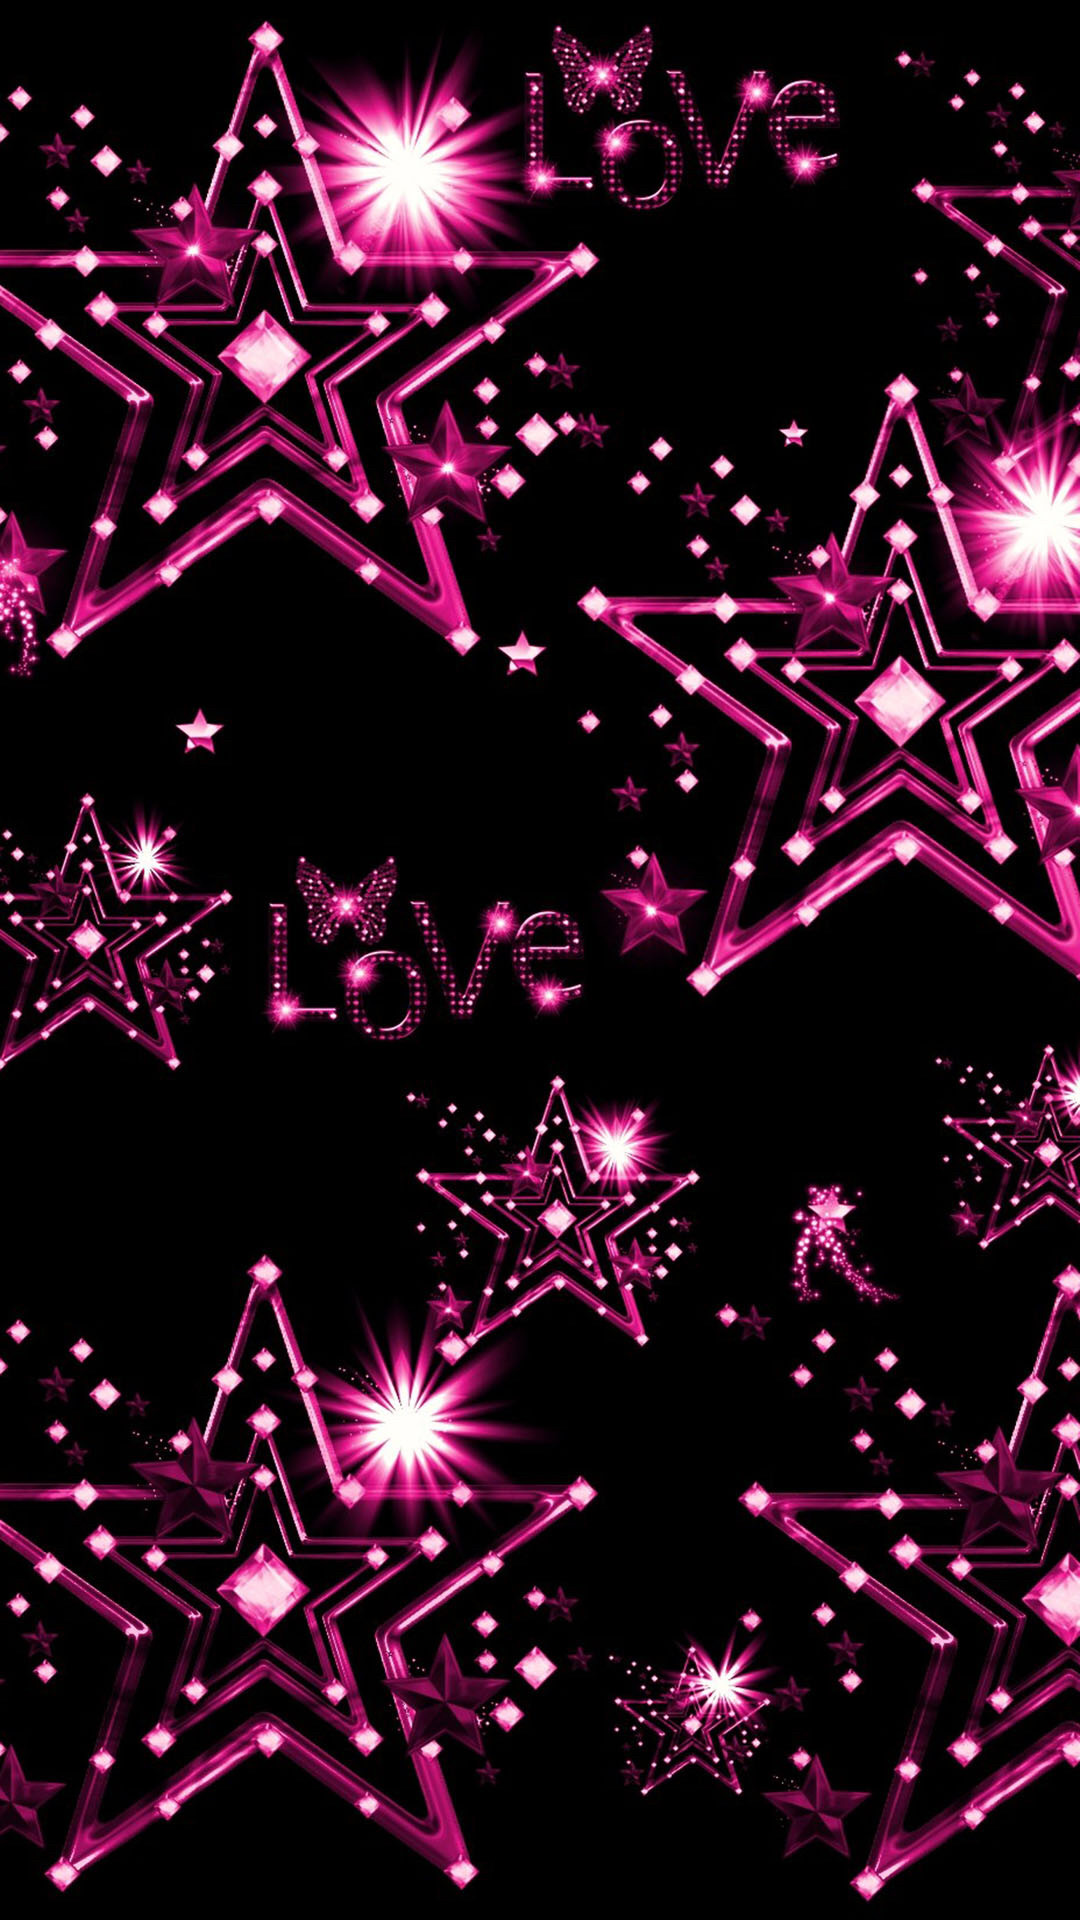 Neon pink wallpapers 59 images for Bright pink wallpaper uk